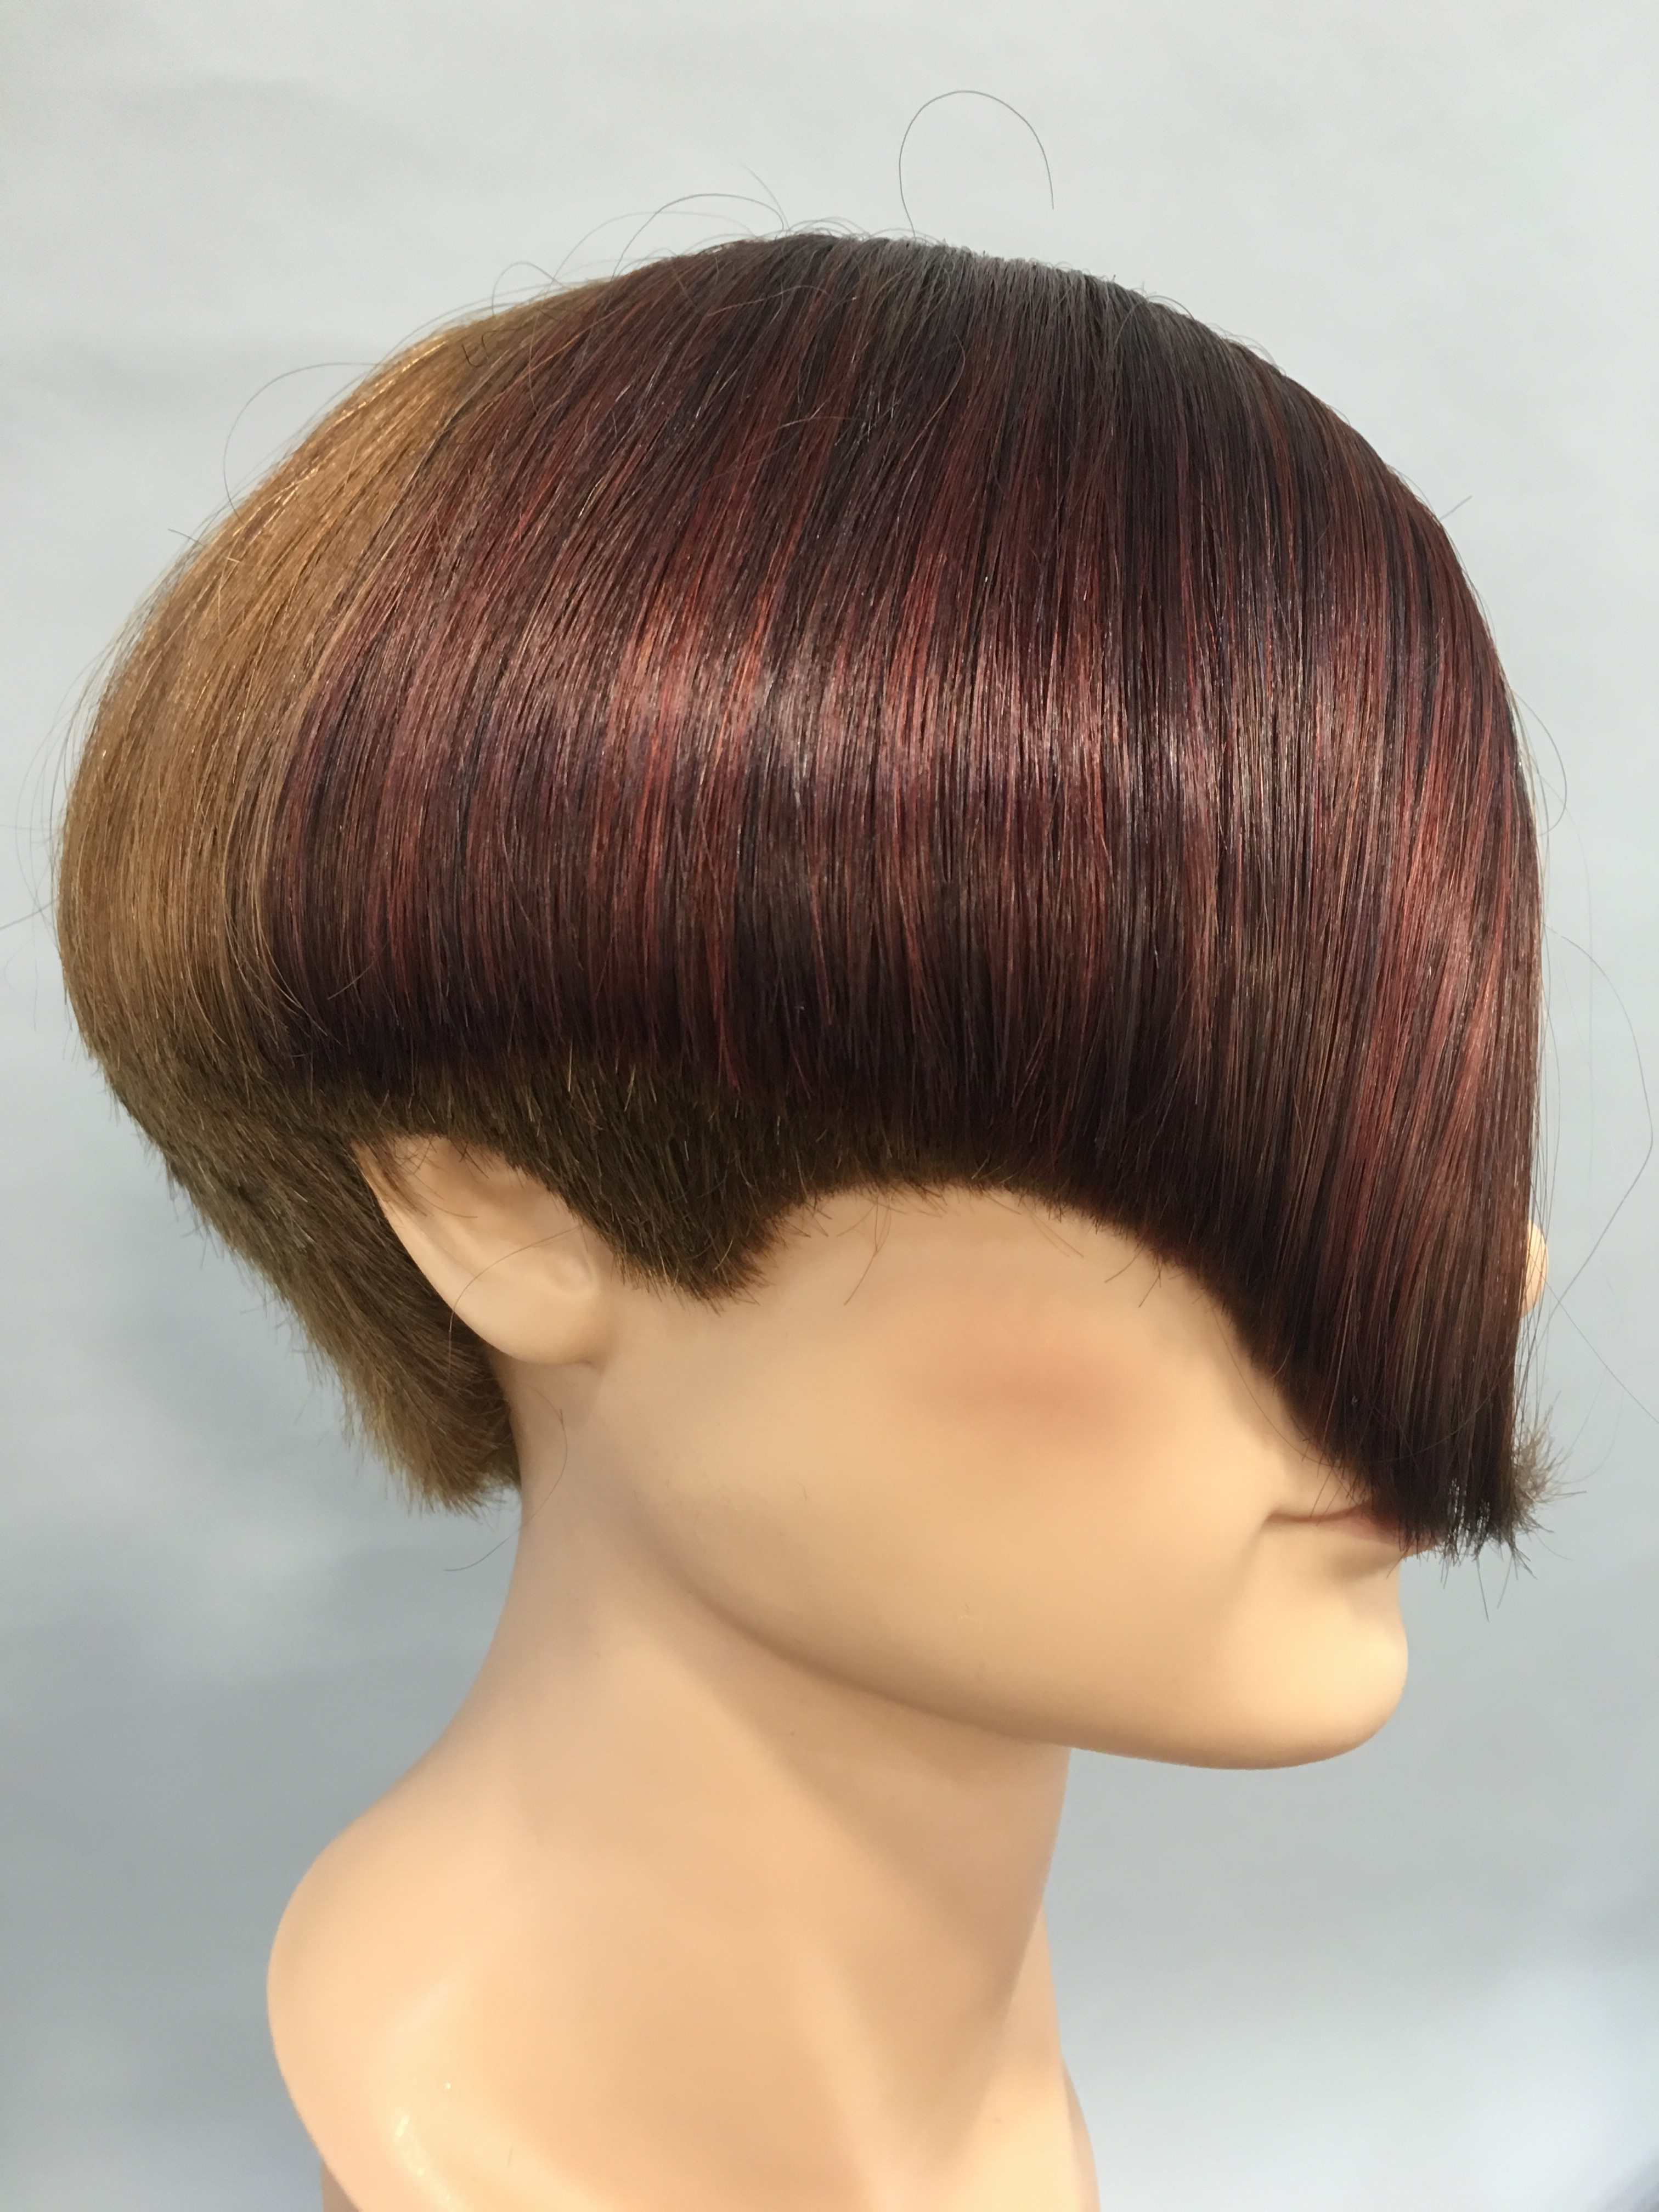 How To Do A Short Graduated Bob Haircut By Steve Turner Mhd